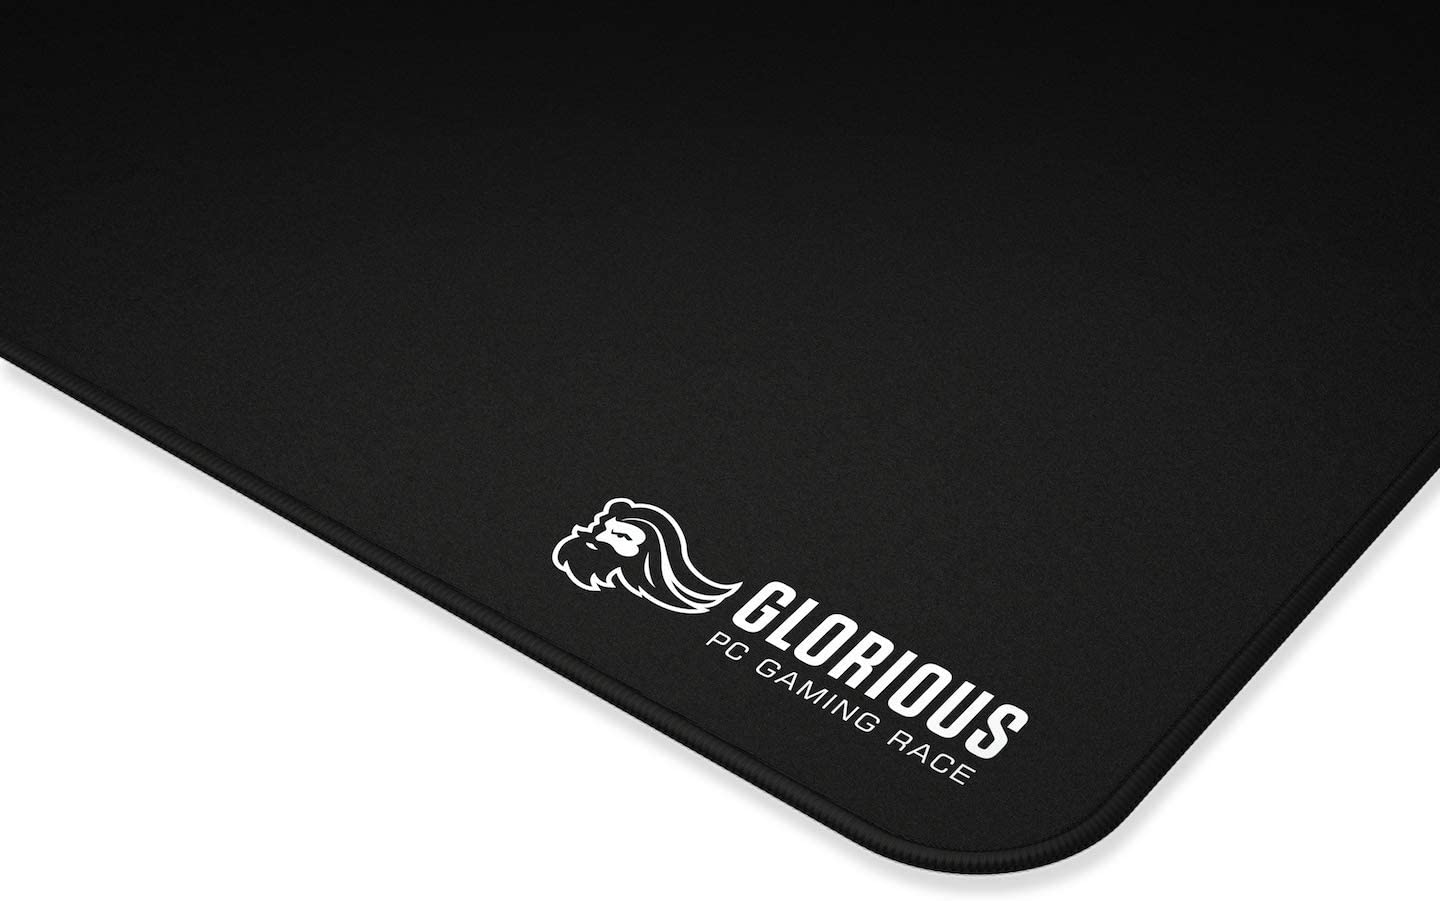 Stitched Edges Glorious Large Gaming Mouse Mat//Pad Black Cloth Mousepad11X